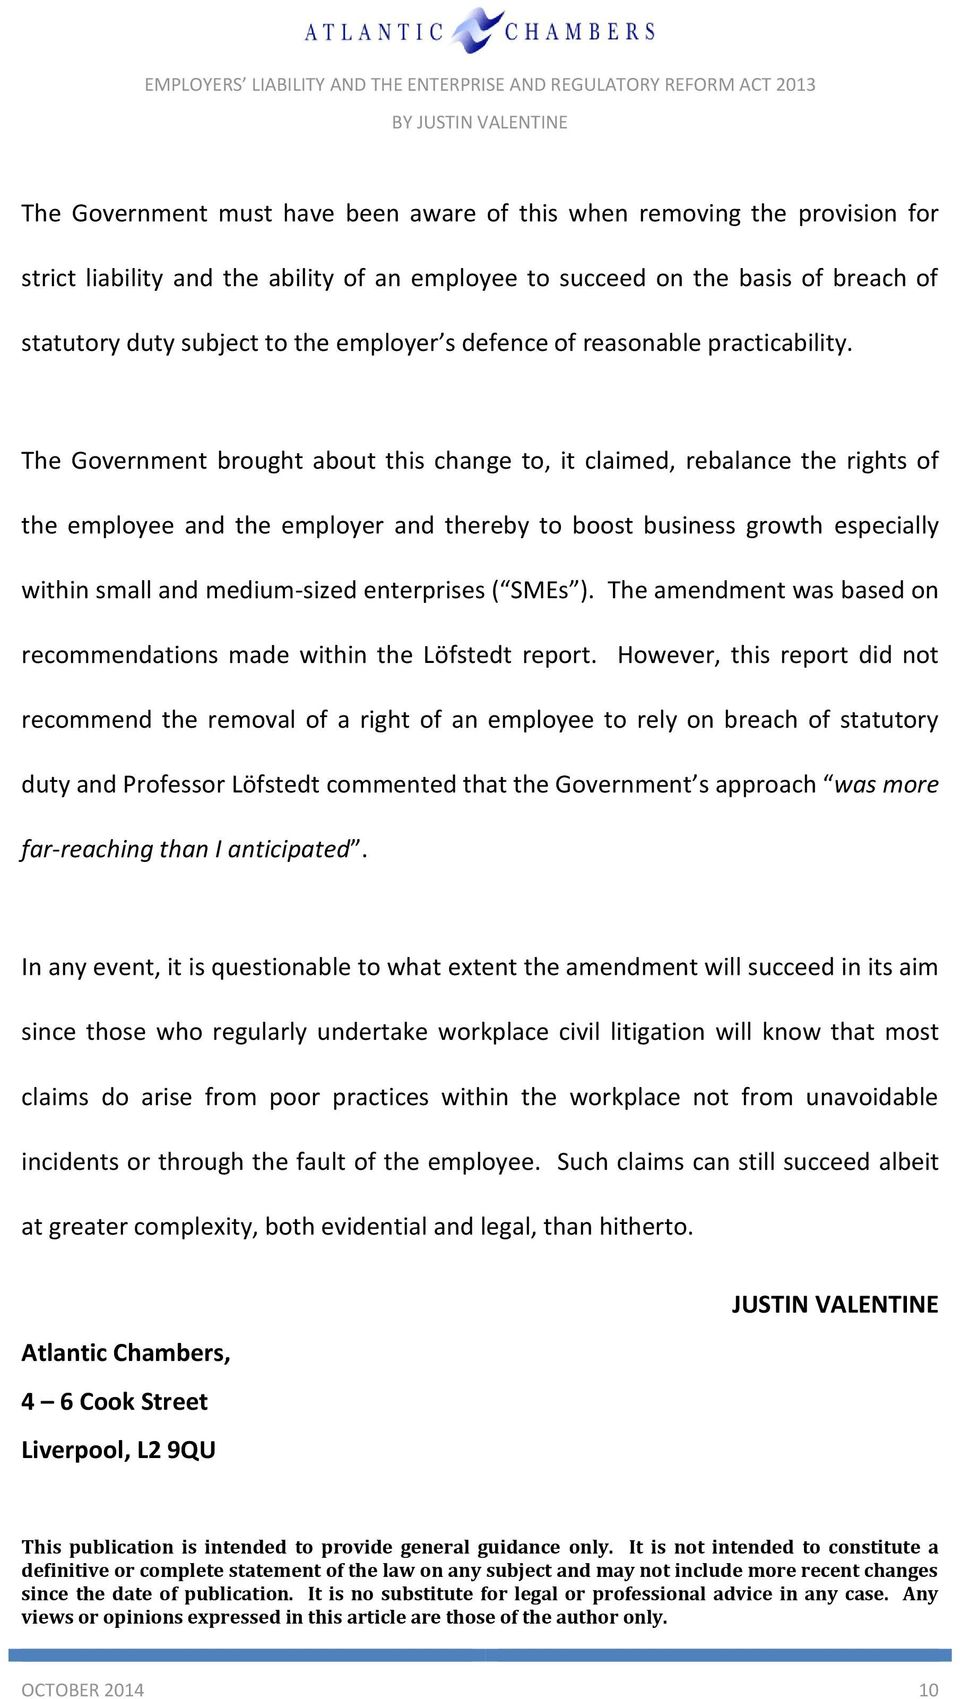 The Government brought about this change to, it claimed, rebalance the rights of the employee and the employer and thereby to boost business growth especially within small and medium-sized